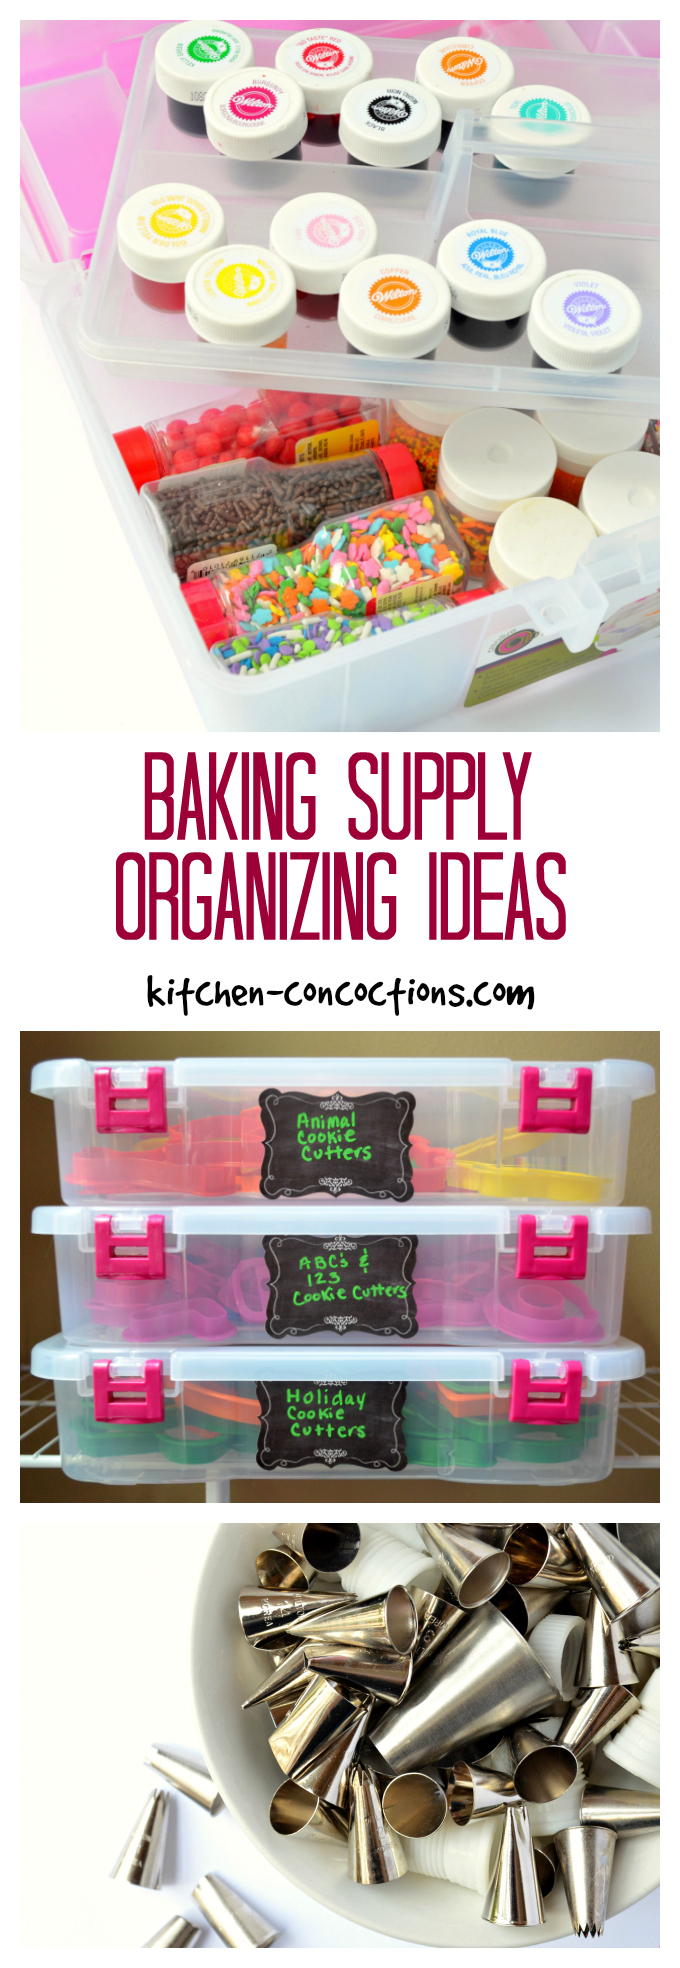 Cake Decorating Solutions Facebook : Baking Supply Organizing Ideas - Kitchen Concoctions